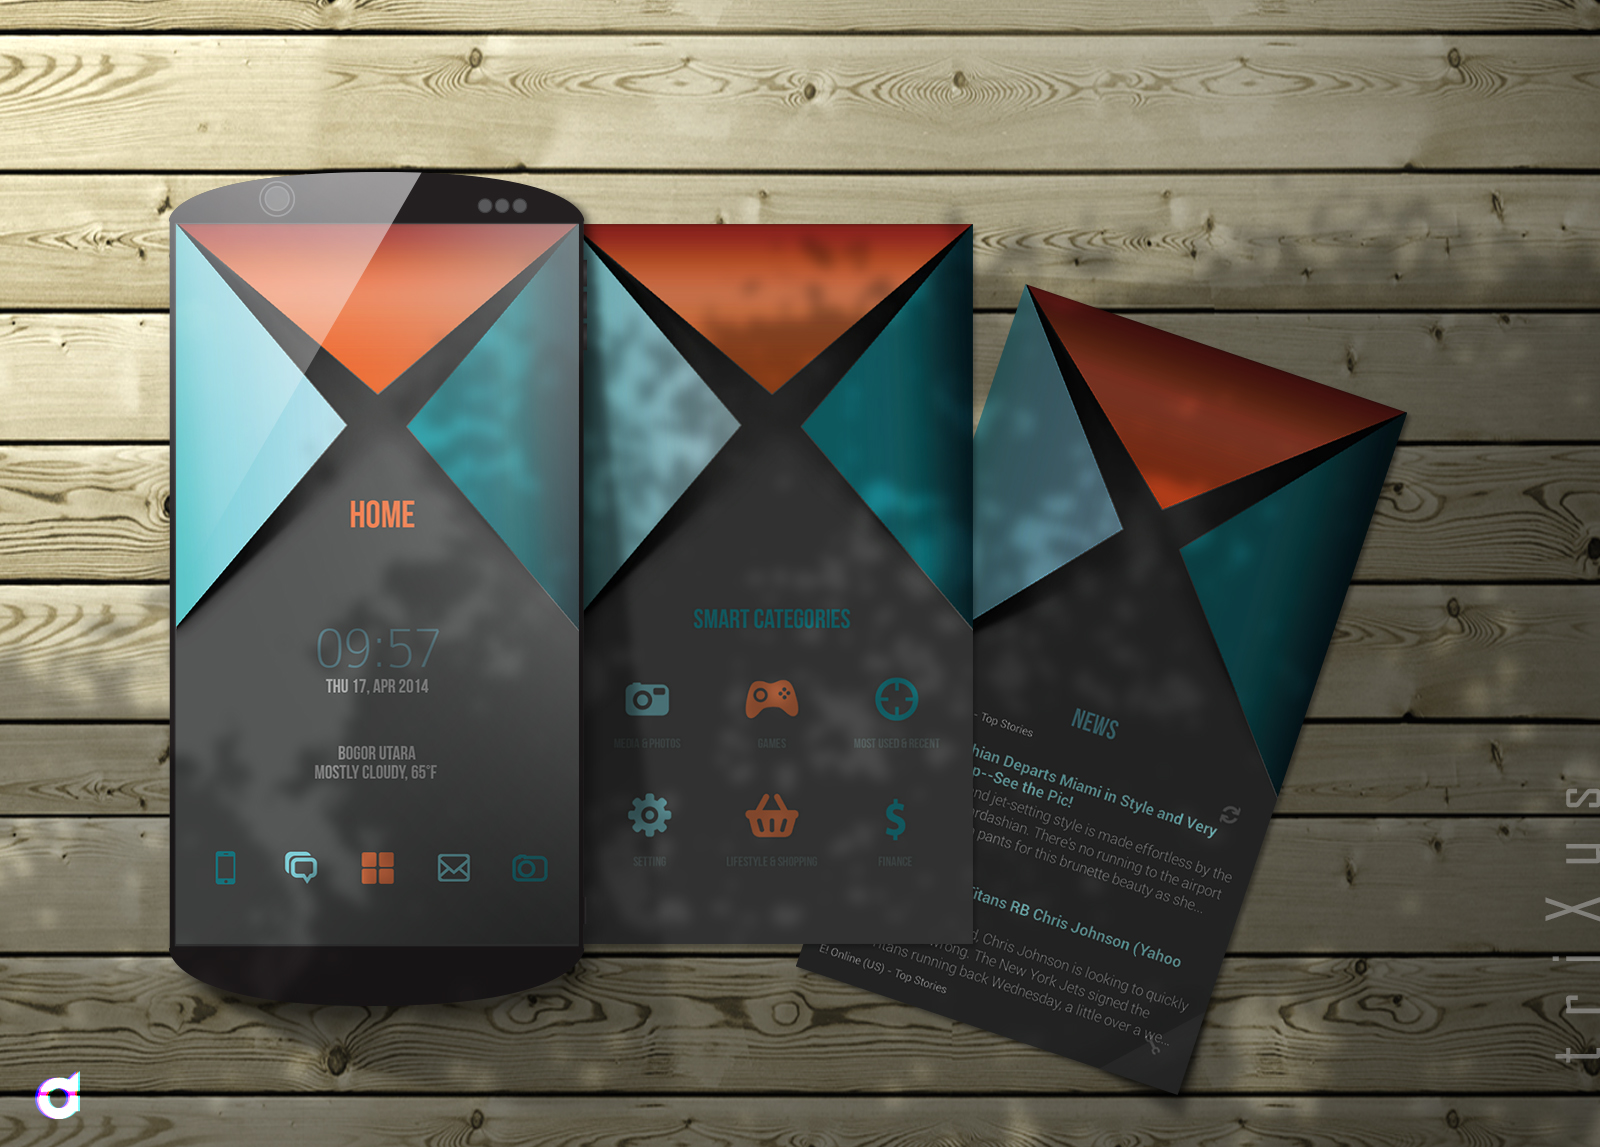 Top 5 Custom Android Homescreens Monthly : May 2014 Edition ...